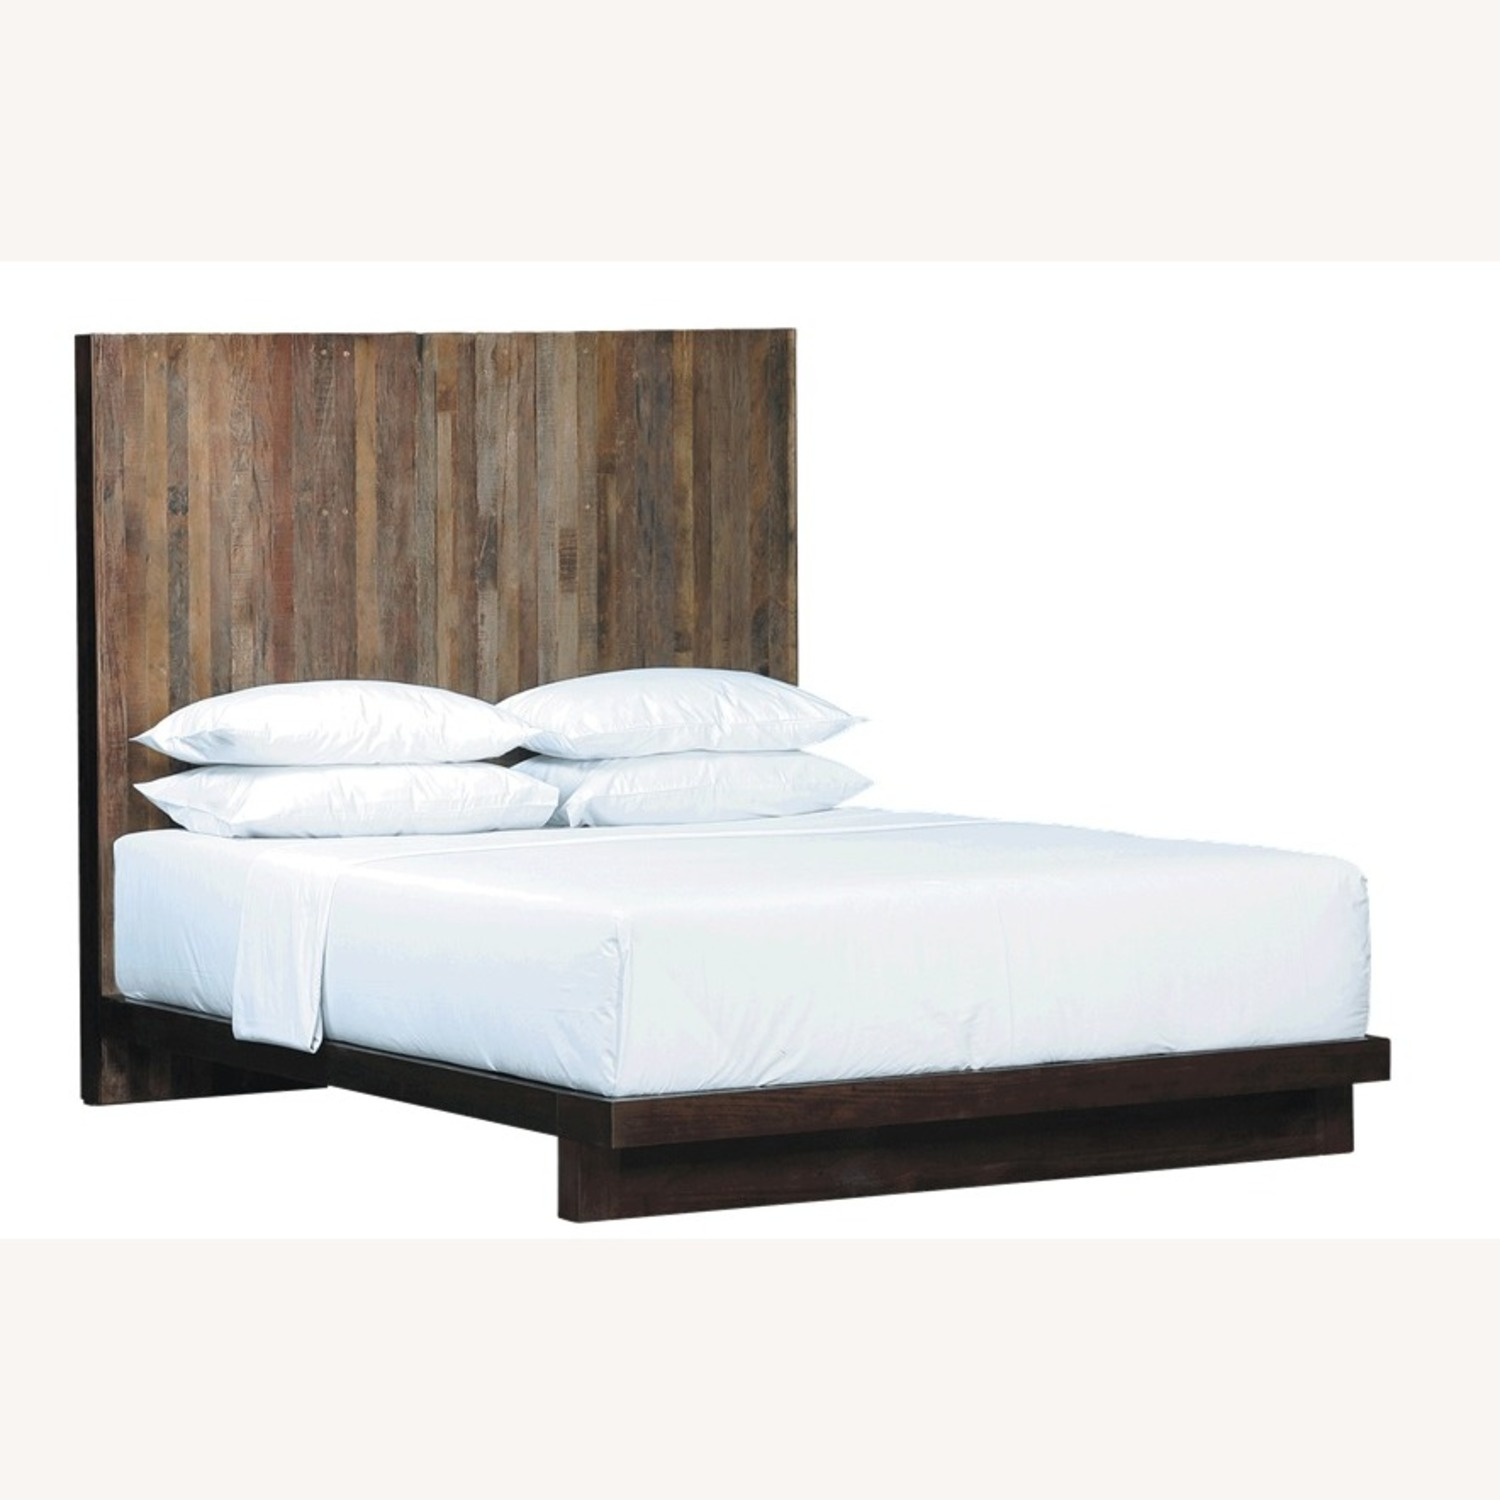 Environment Furniture Reclaimed Brazilian Peroba Wood Bed - image-1